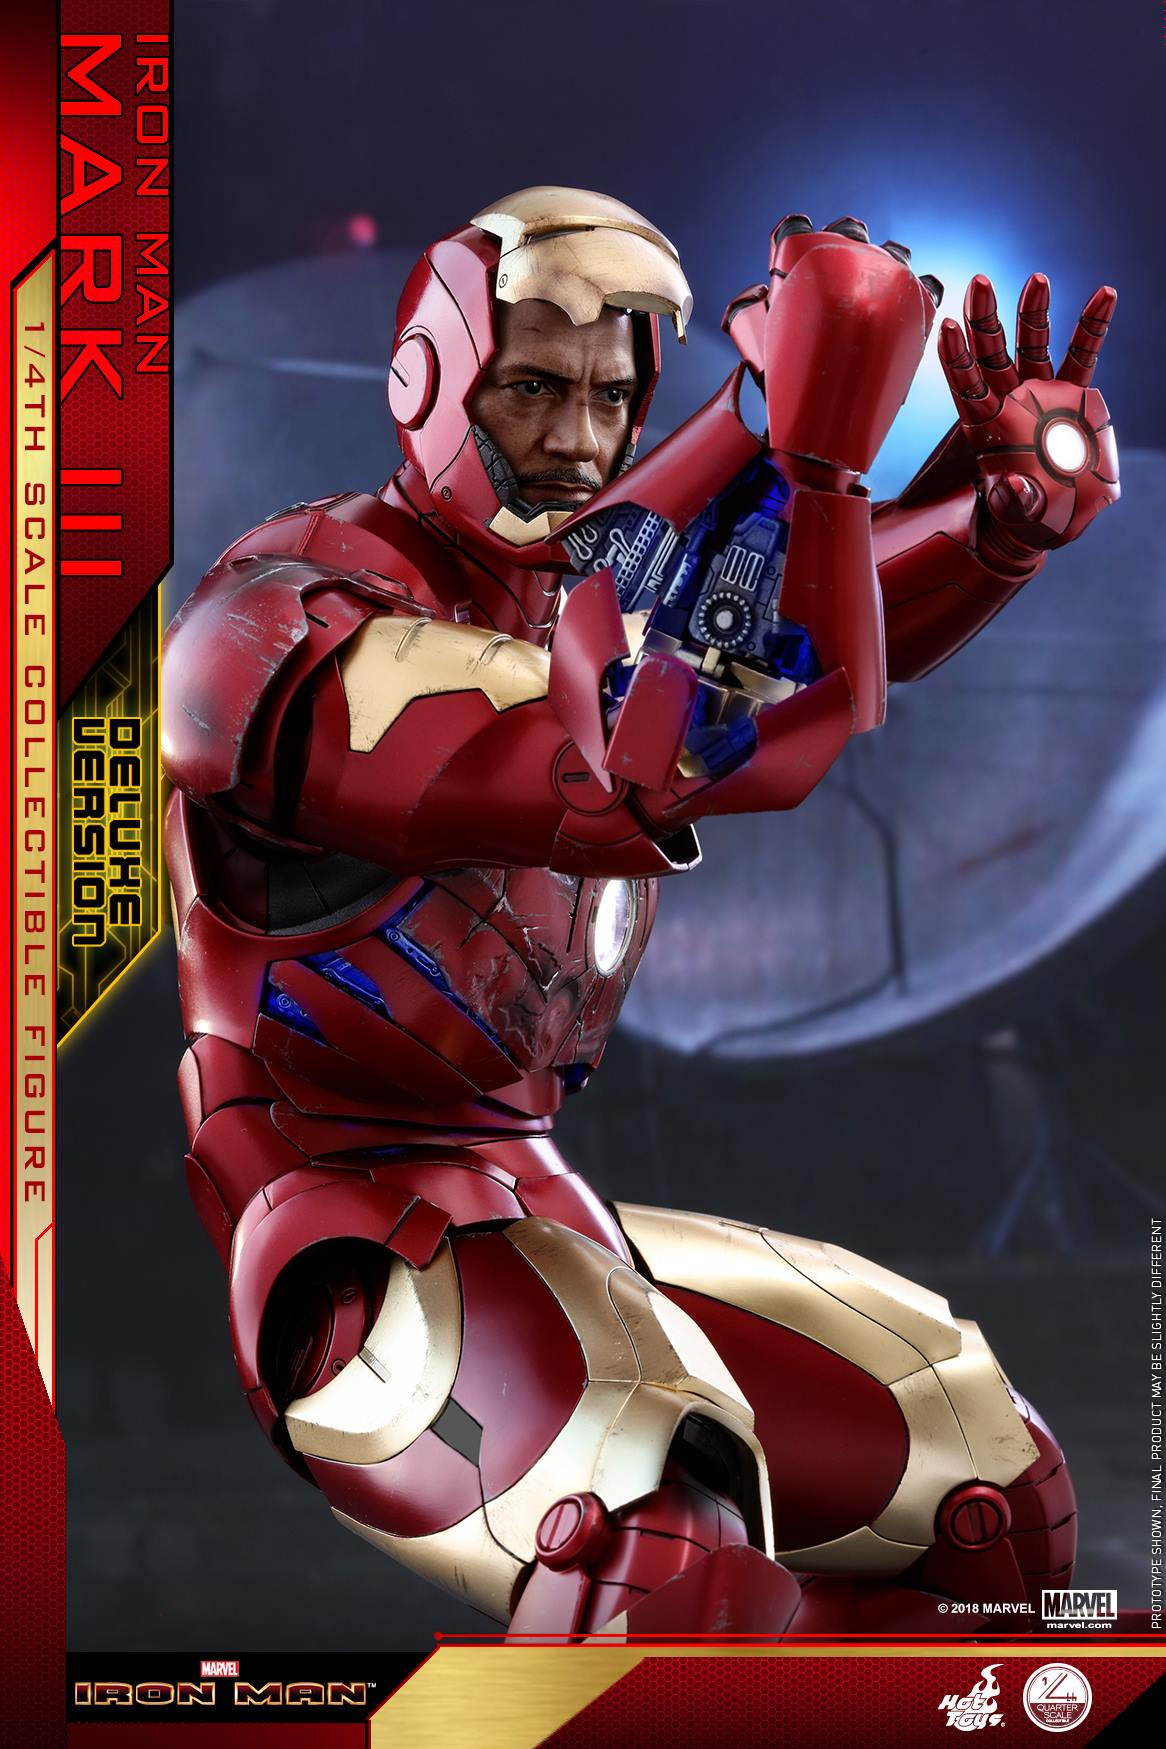 Hot Toys - QS012 - Iron Man Mark III Deluxe Edition (1/4 Scale)